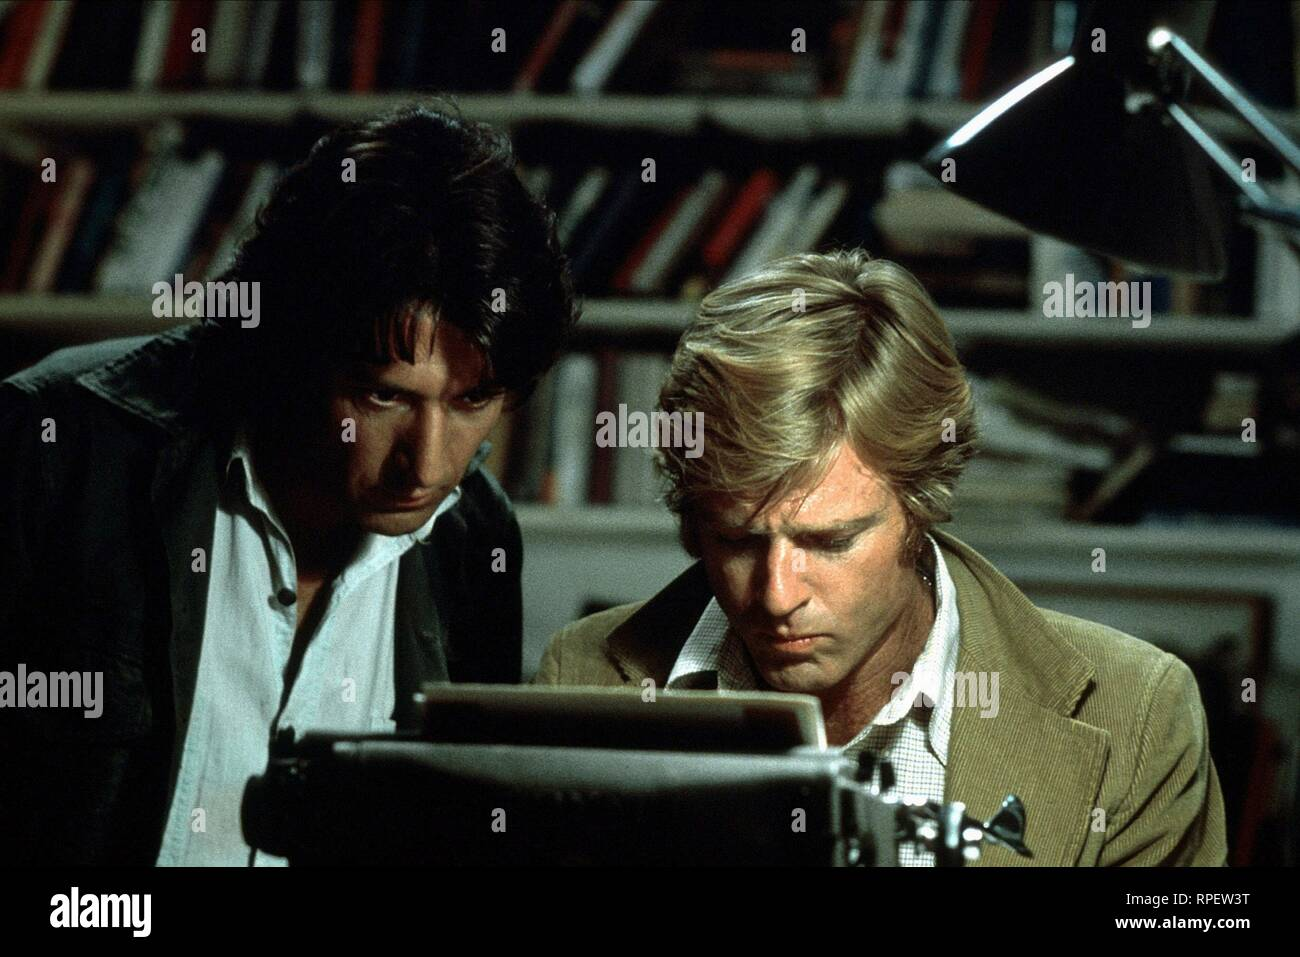 ALL THE PRESIDENT'S MEN, DUSTIN HOFFMAN, ROBERT REDFORD, 1976 - Stock Image